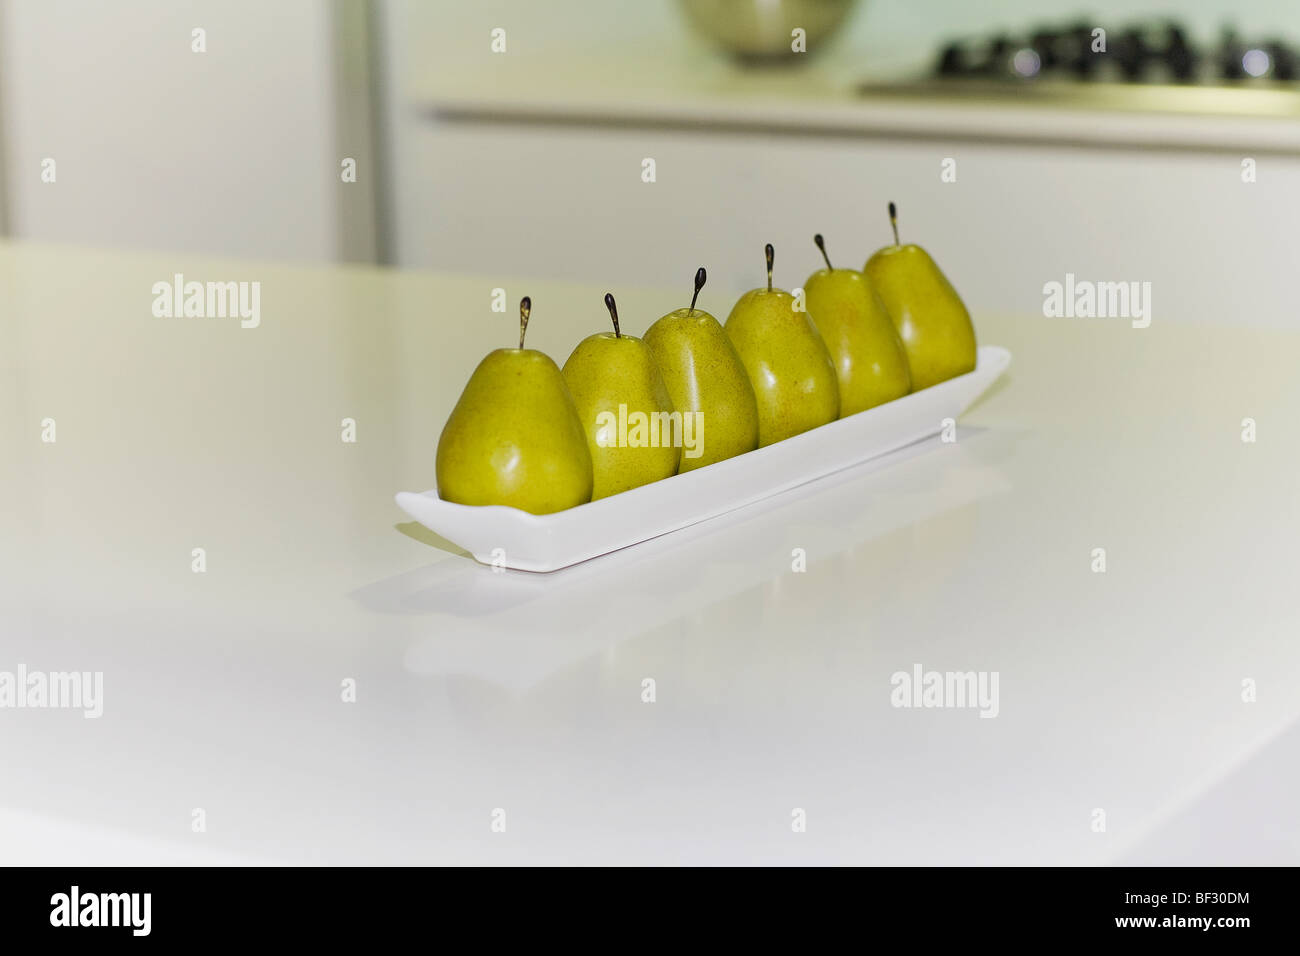 Artificial pears on a table Stock Photo